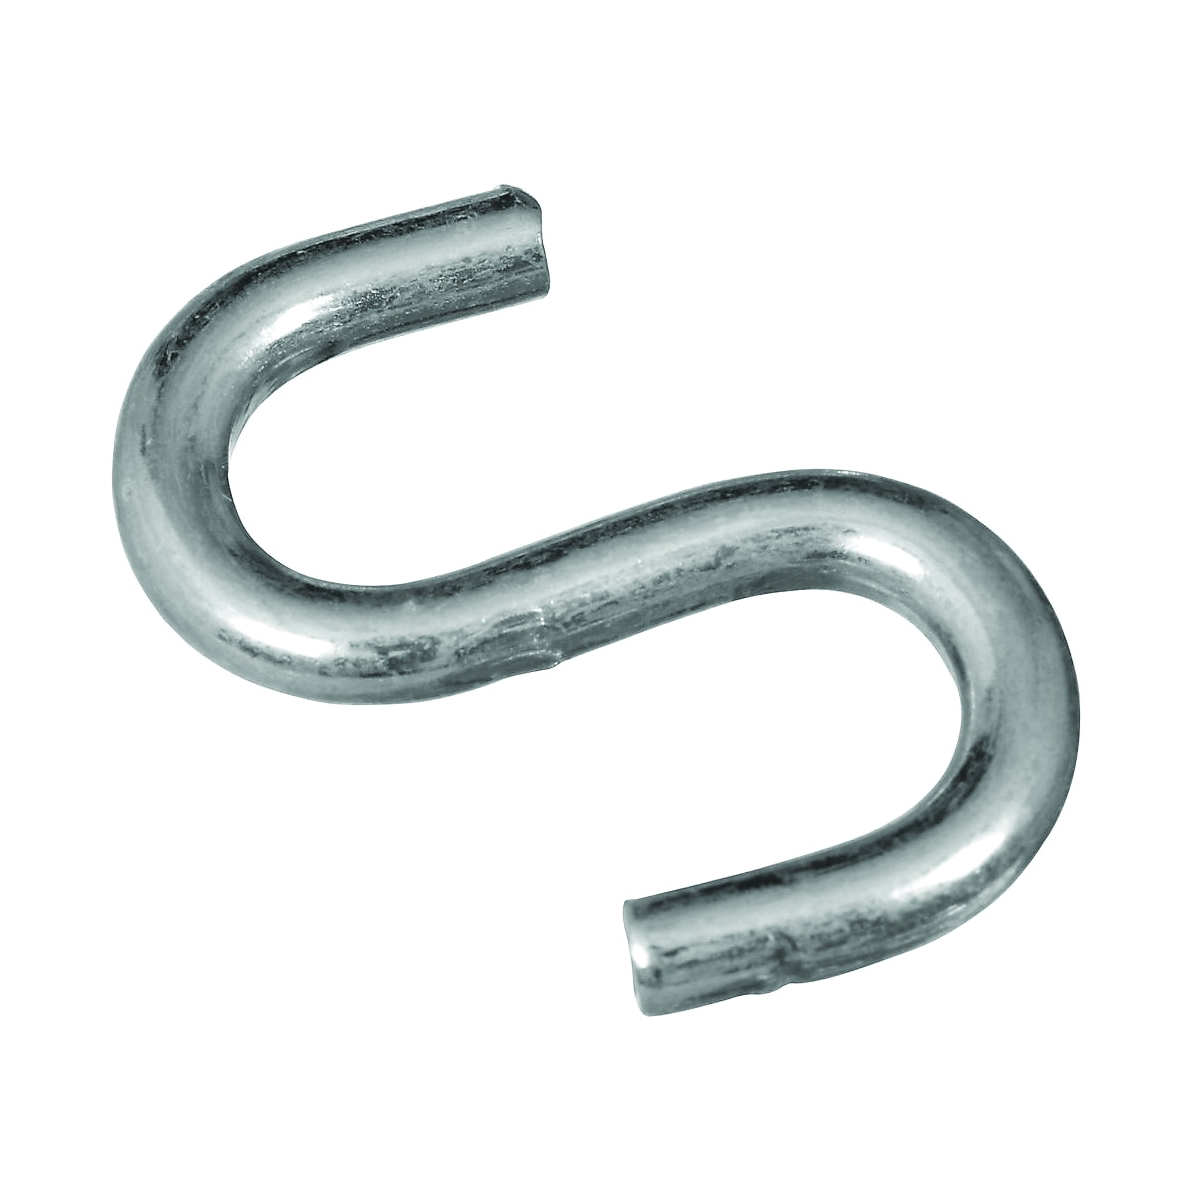 Picture of National Hardware N273-417 S-Hook, 40 lb Working Load, 0.177 in Dia Wire, Steel, Zinc